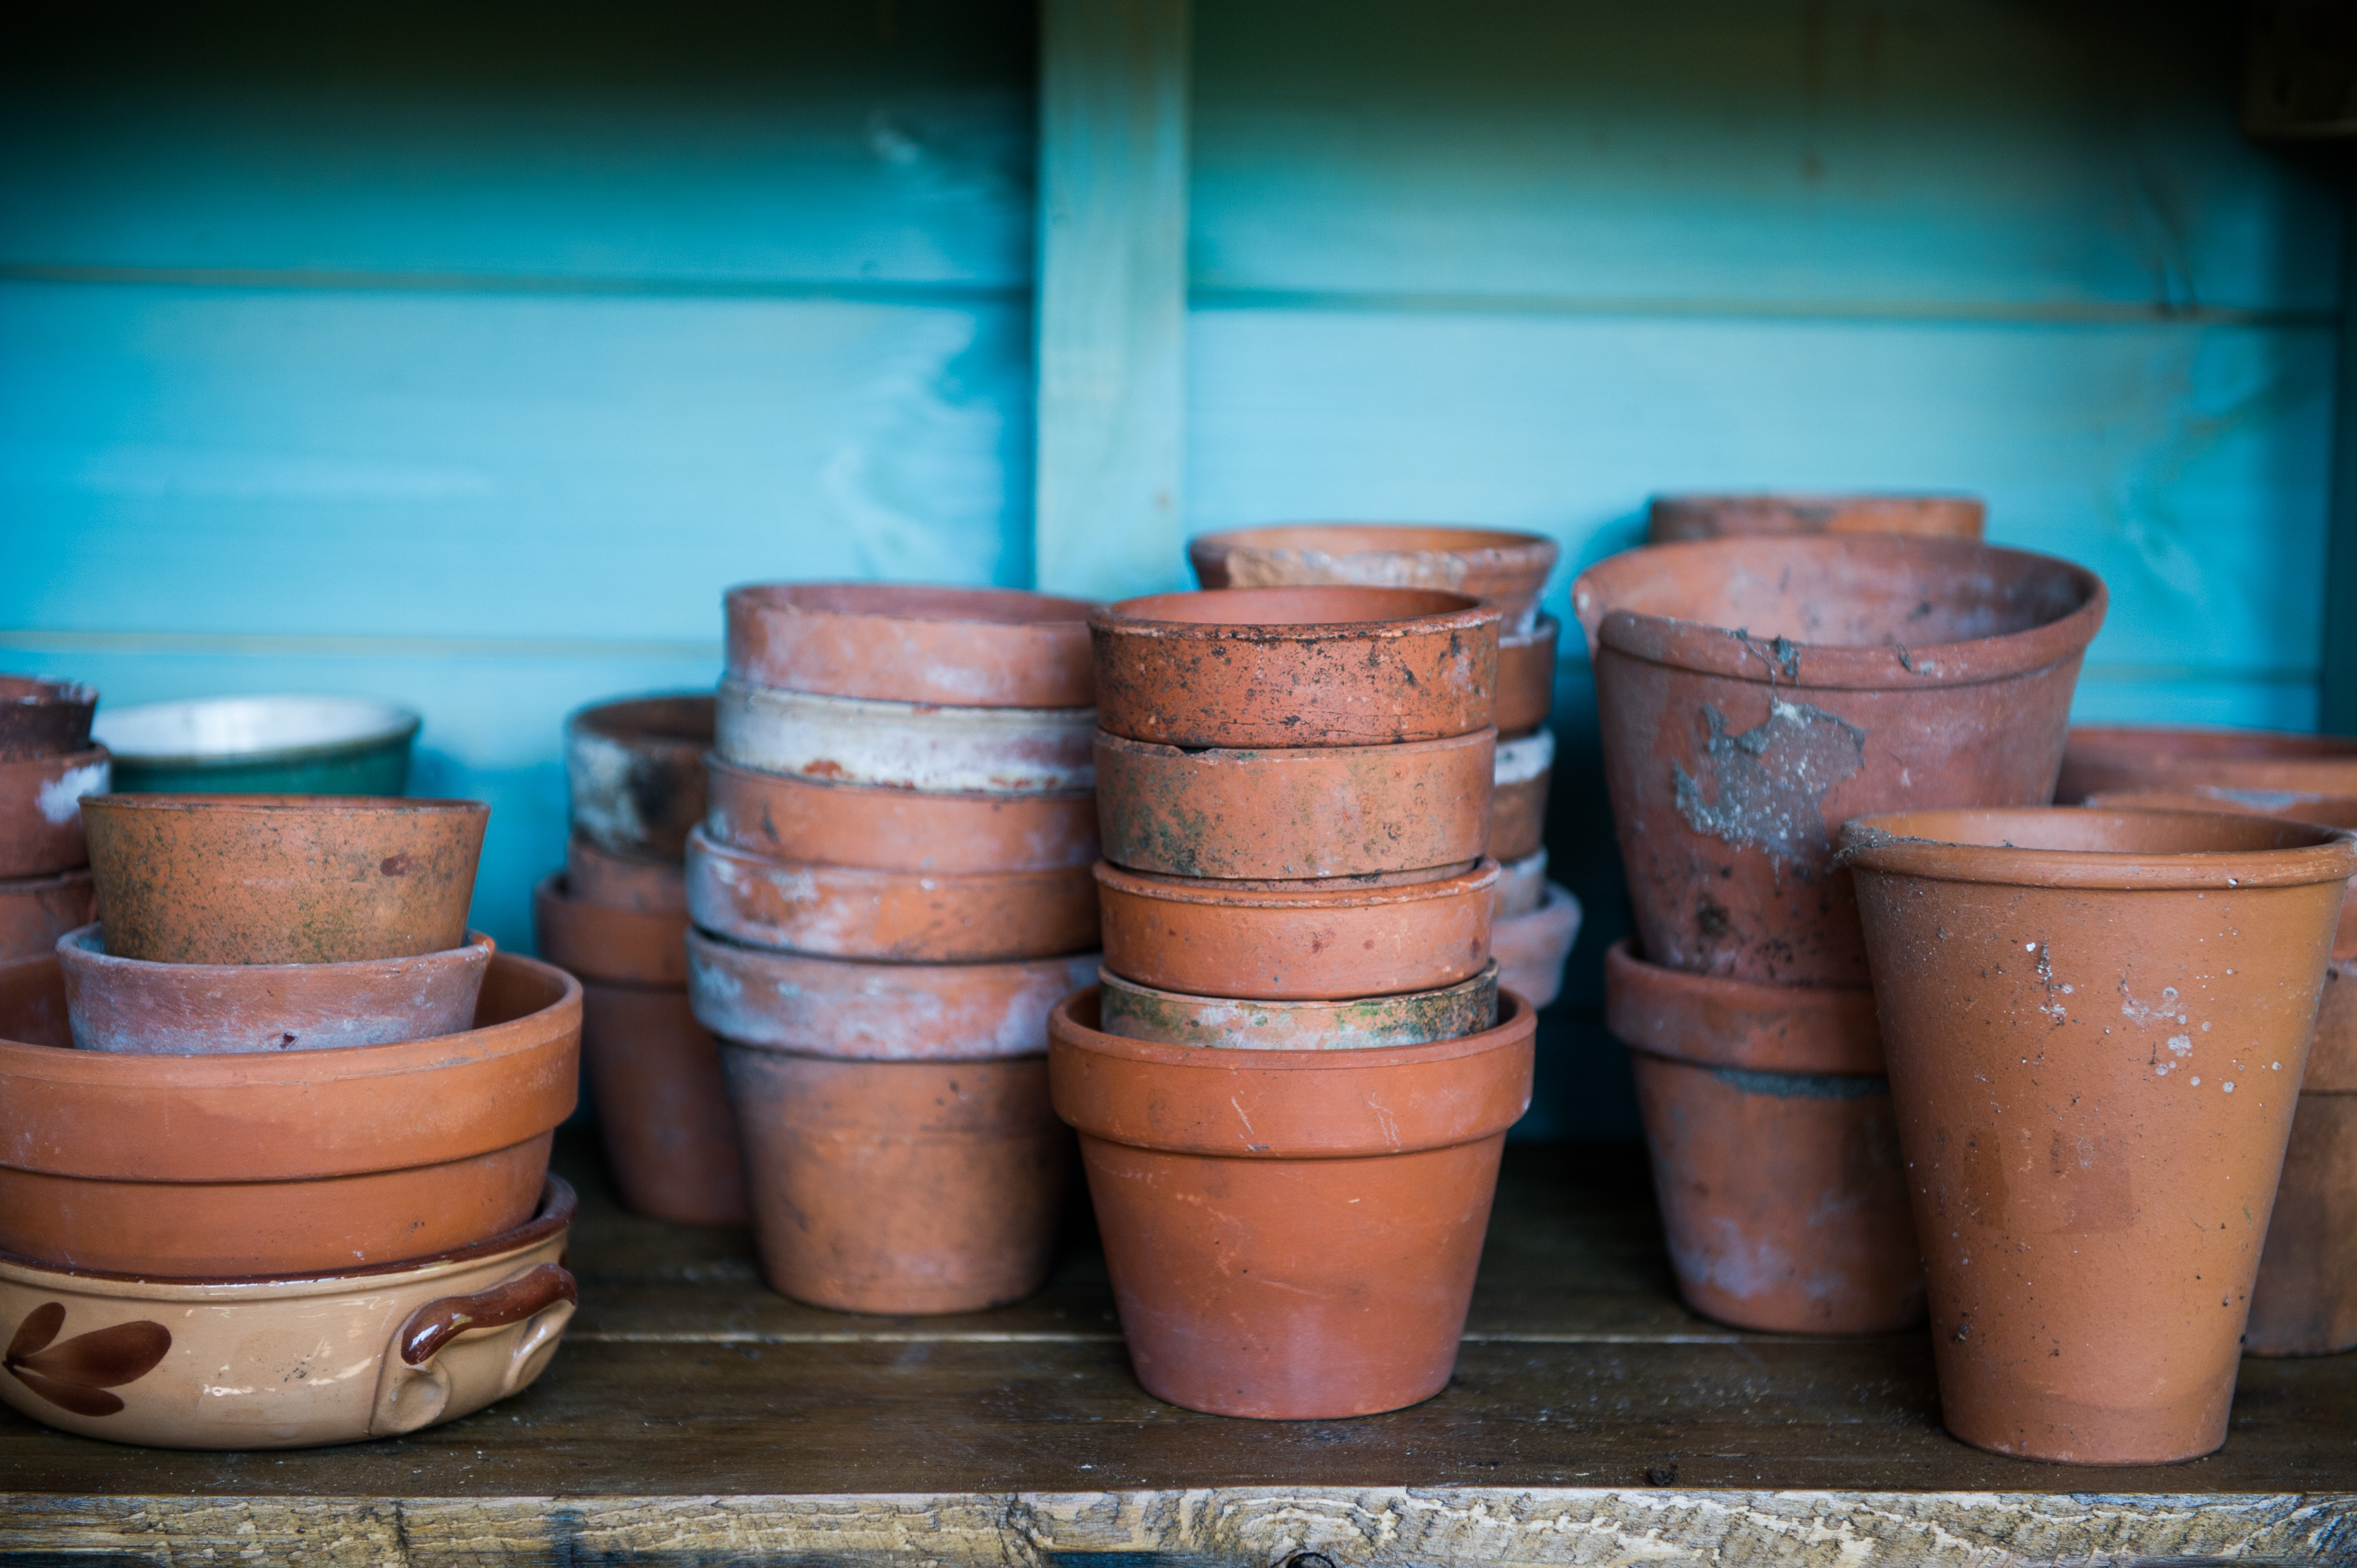 Terracotta pots in a potting shed